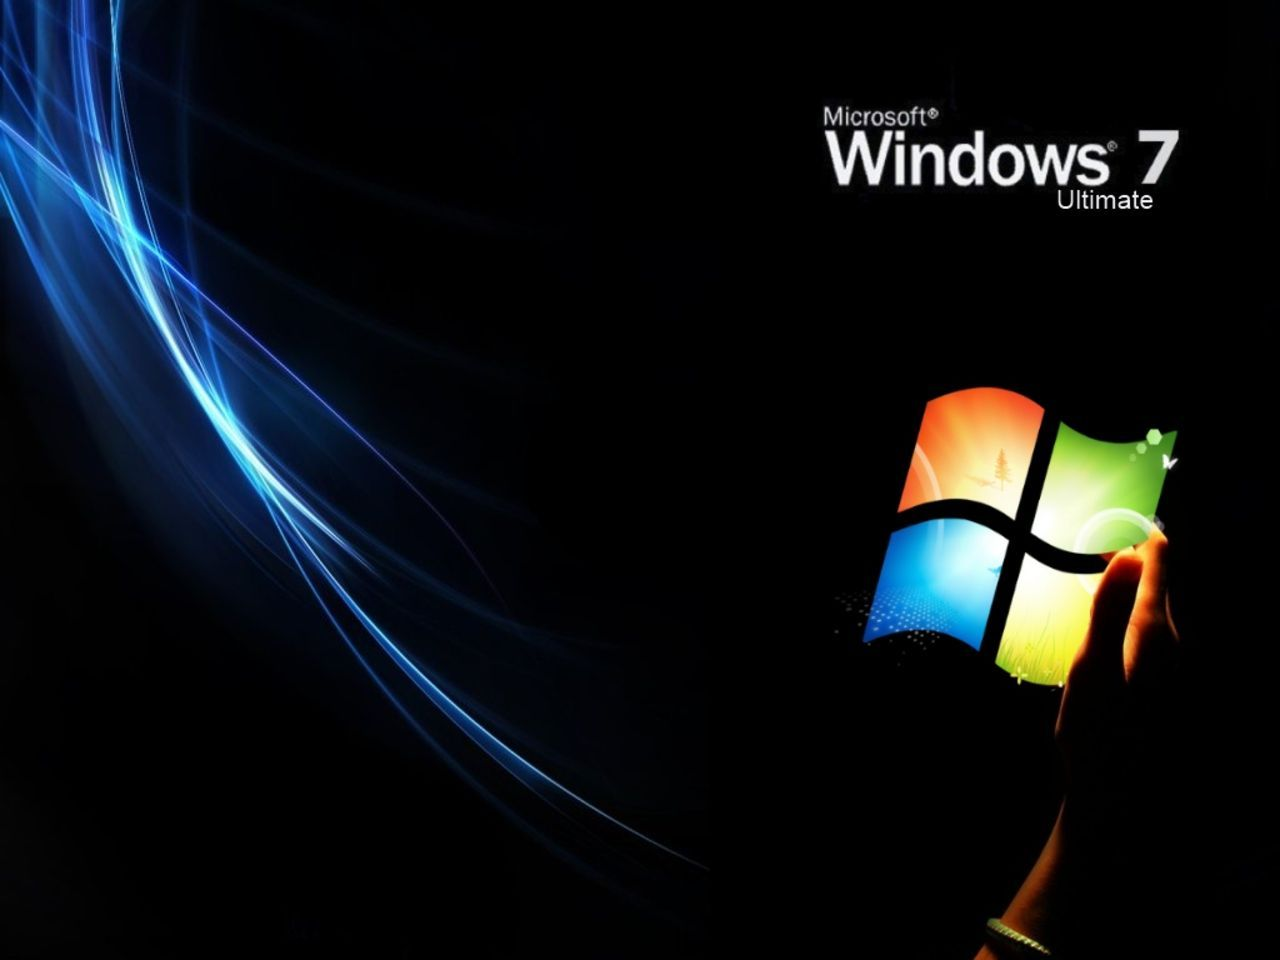 Download Best Windows Wallpapers Hd Collection 1920 1080 Windows 7 Wallpapers Download 47 Wallpapers Best Windows Windows Wallpaper Dual Monitor Wallpaper